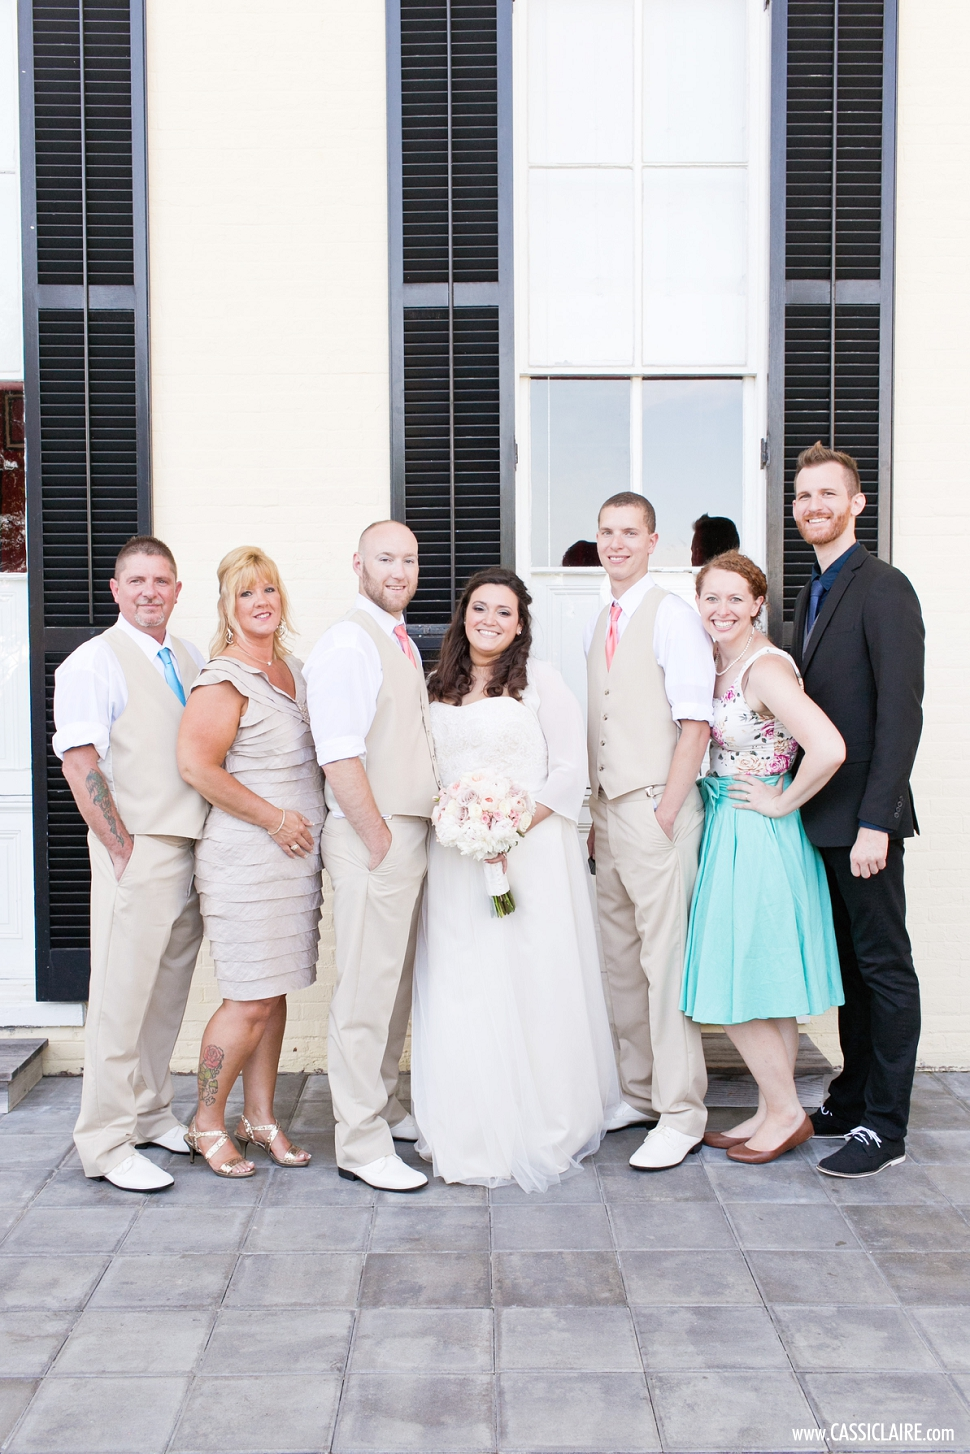 Cape-May-Congress-Hall-Wedding_56.jpg